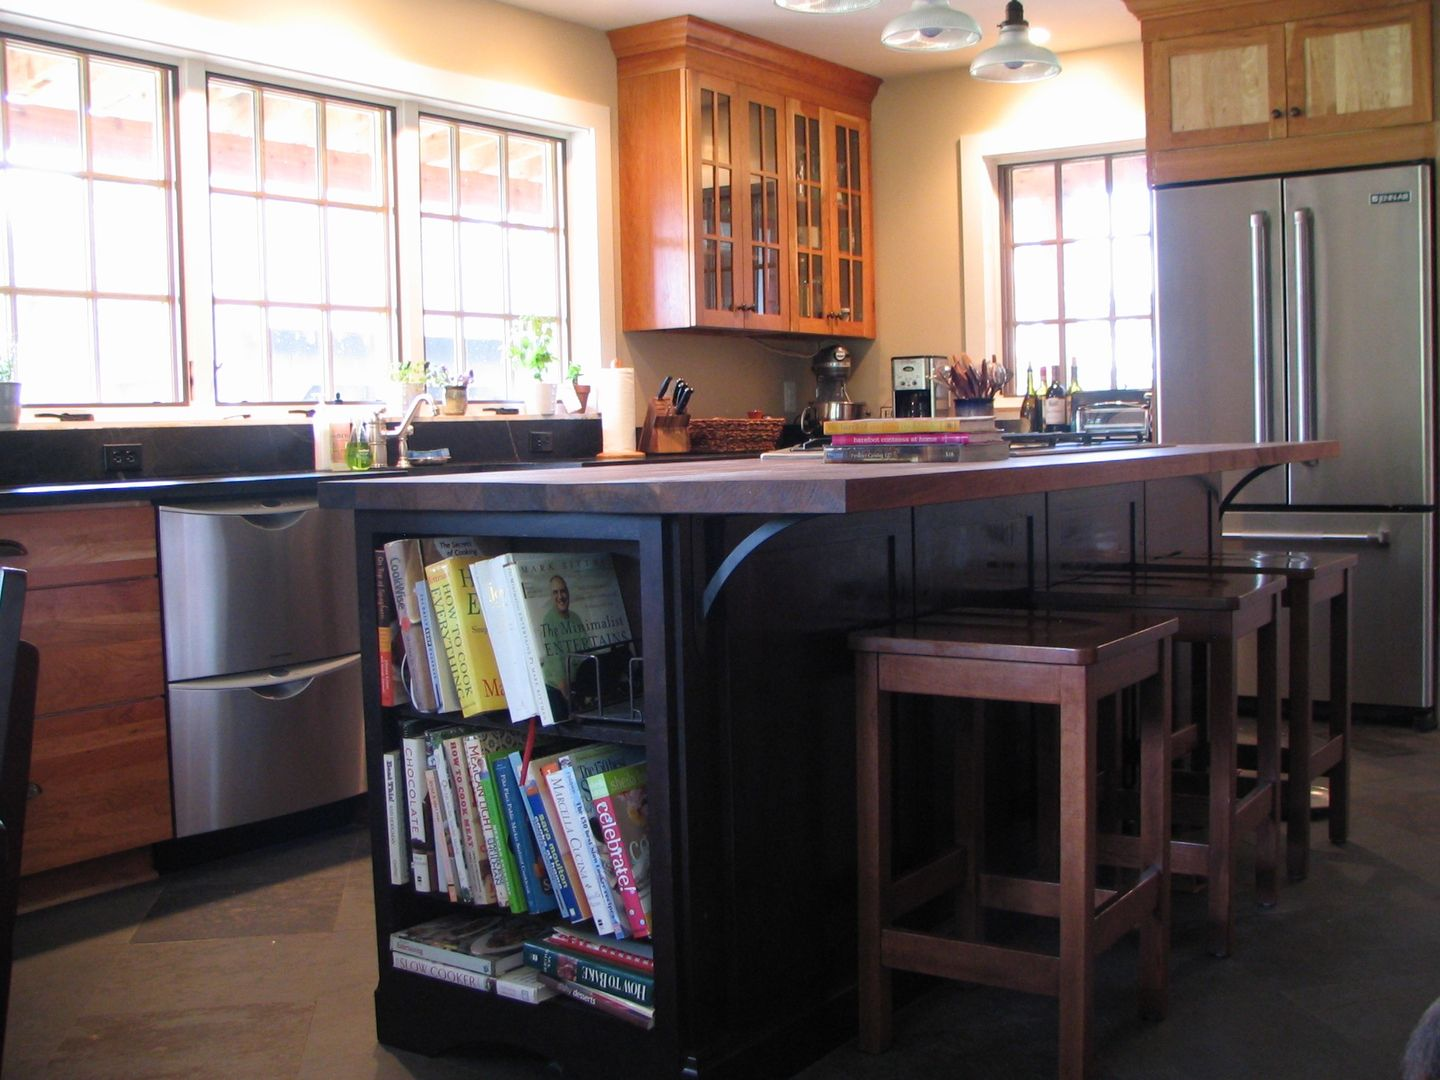 Kitchen Remodel In Farmhouse, Arts And Crafts Style, With Soapstone  Countertops, Decora Cabinets